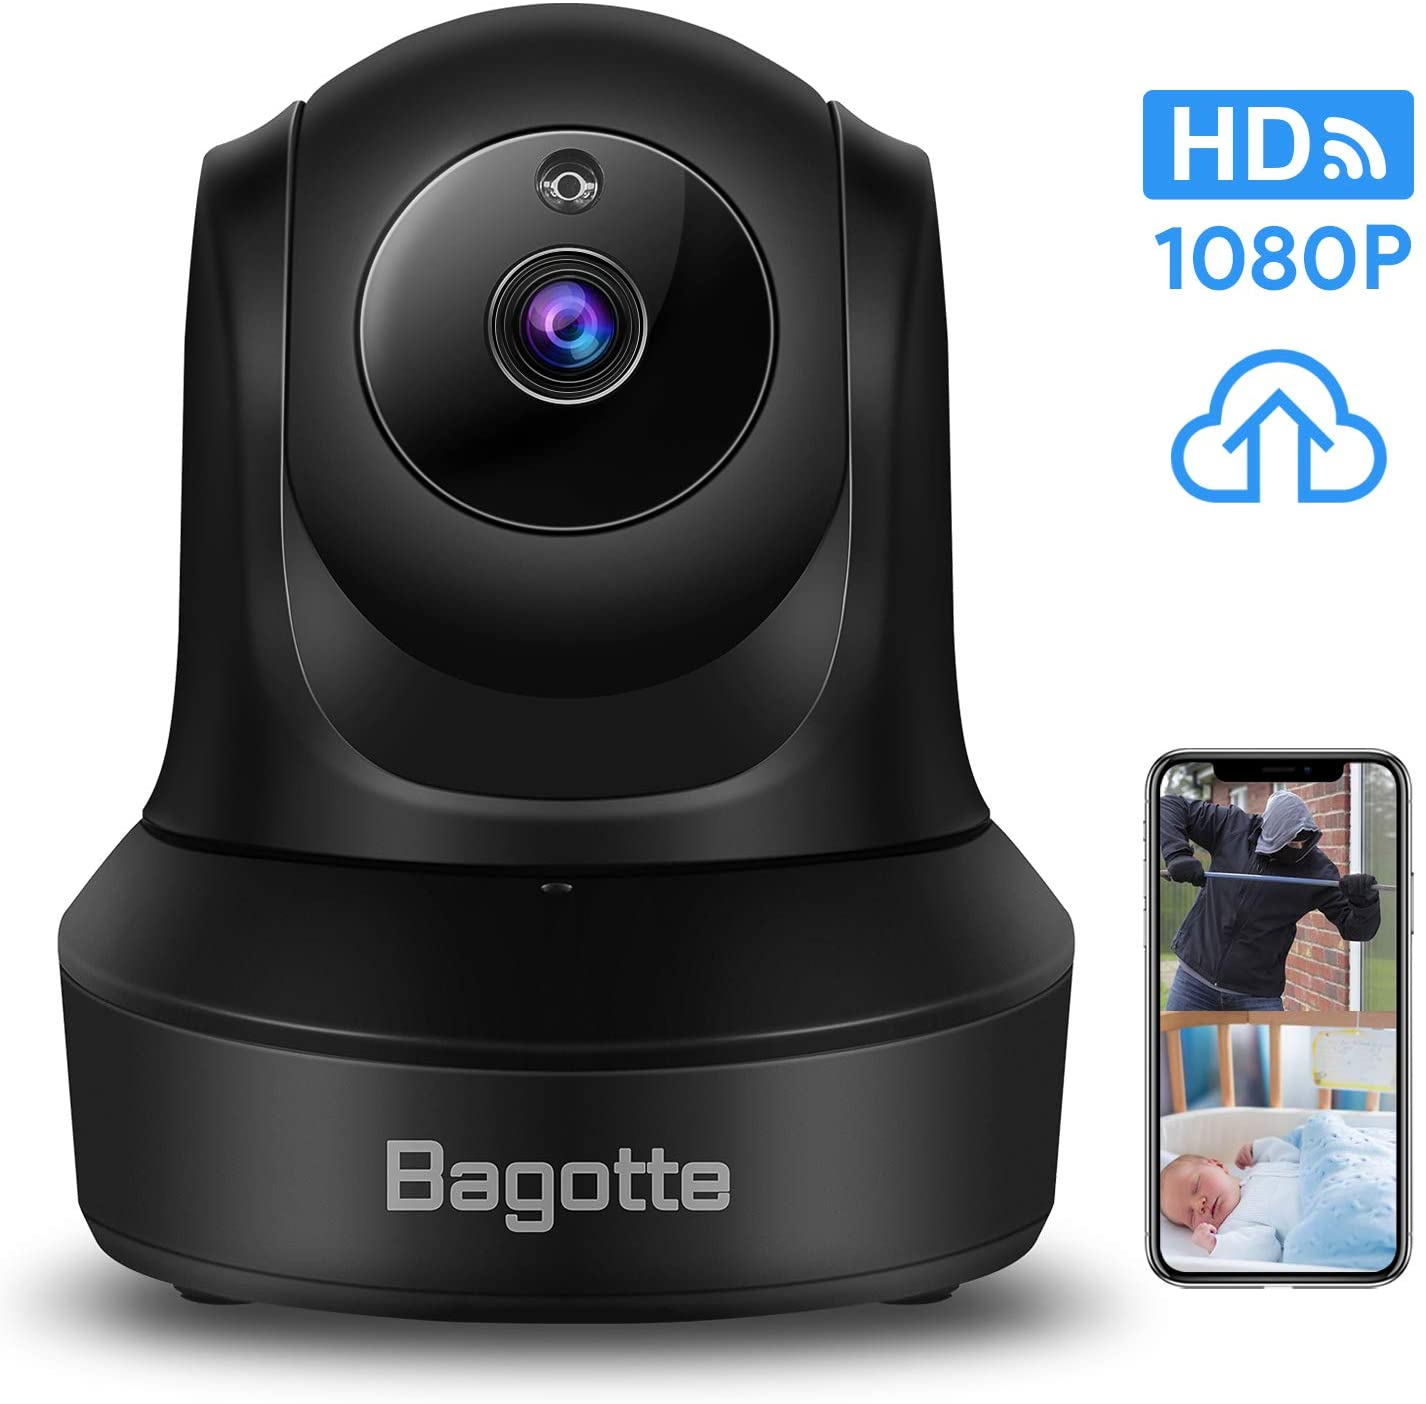 WiFi Security Camera, Bagotte 1080P HD Home Wireless IP Camera, Surveillance Cloud Cam Features Night Vision/ 2-Way Audio/Motion Detection/128G Memory Card Slot for Baby Monitor/Pet Dog Security